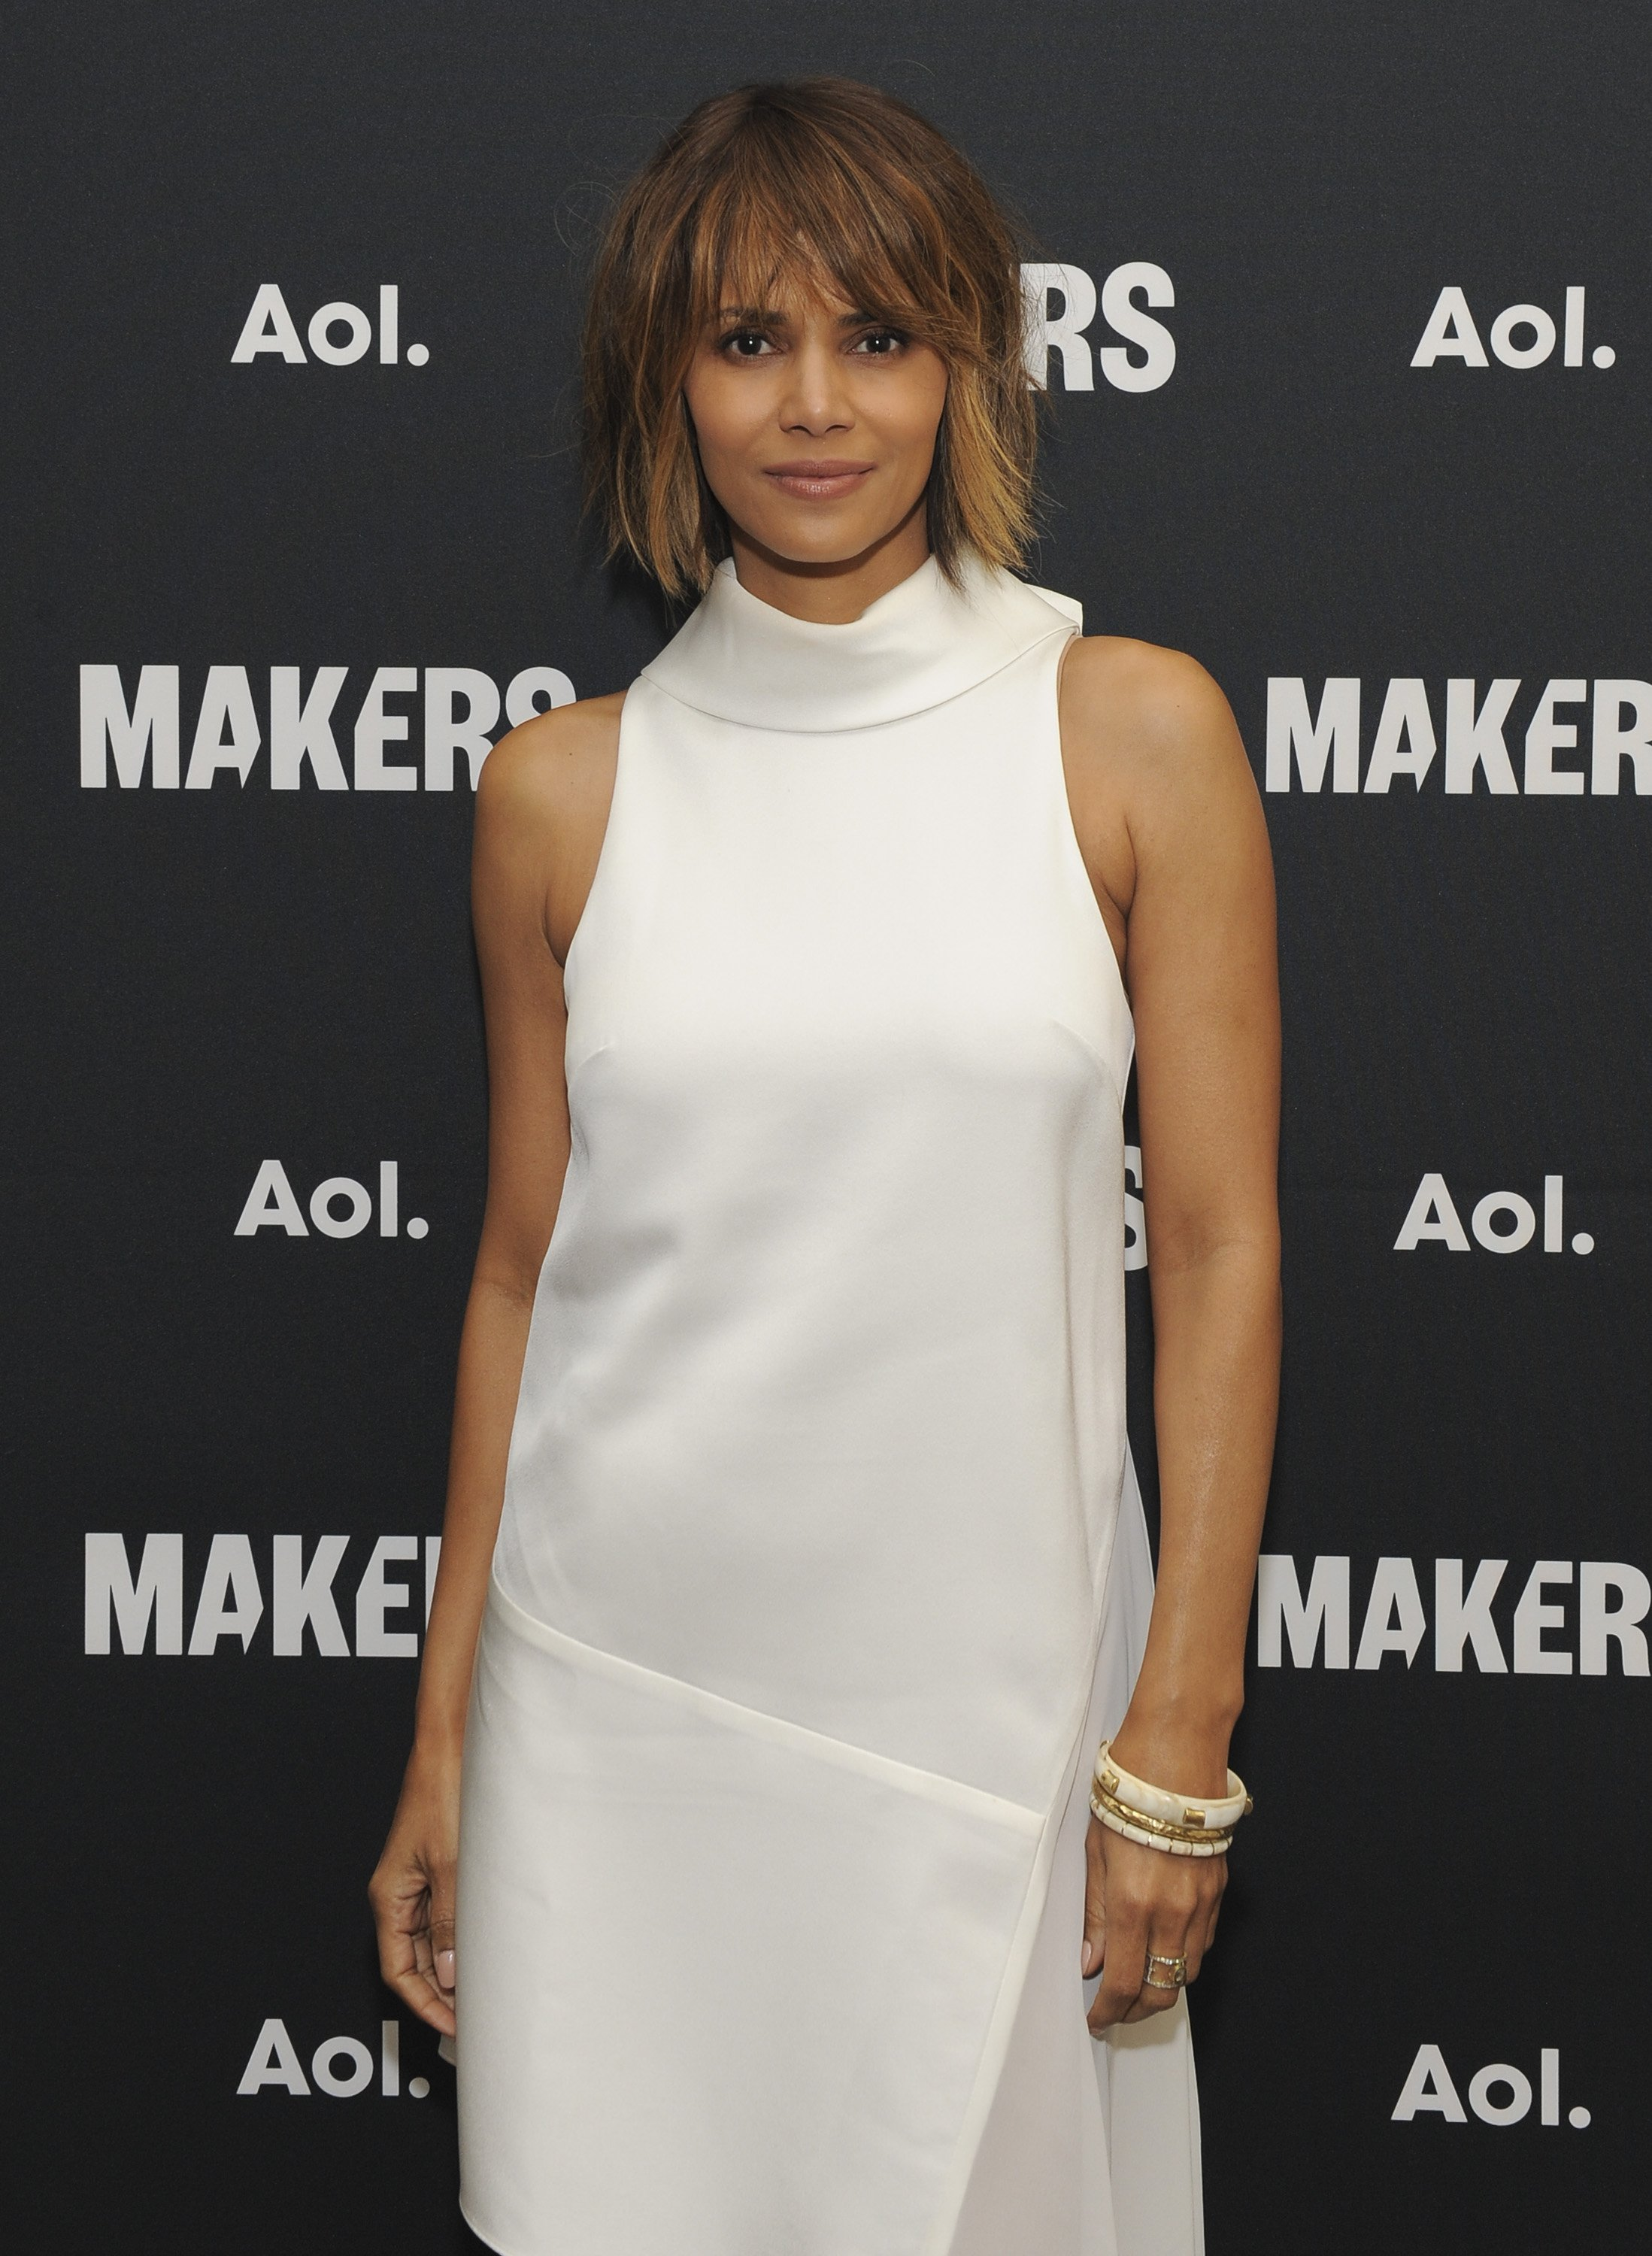 Halle Berry attends the 2016 MAKERS Conference Day 2 at the Terrenea Resort on February 2, 2016 in Rancho Palos Verdes, California | Photo: Getty Images